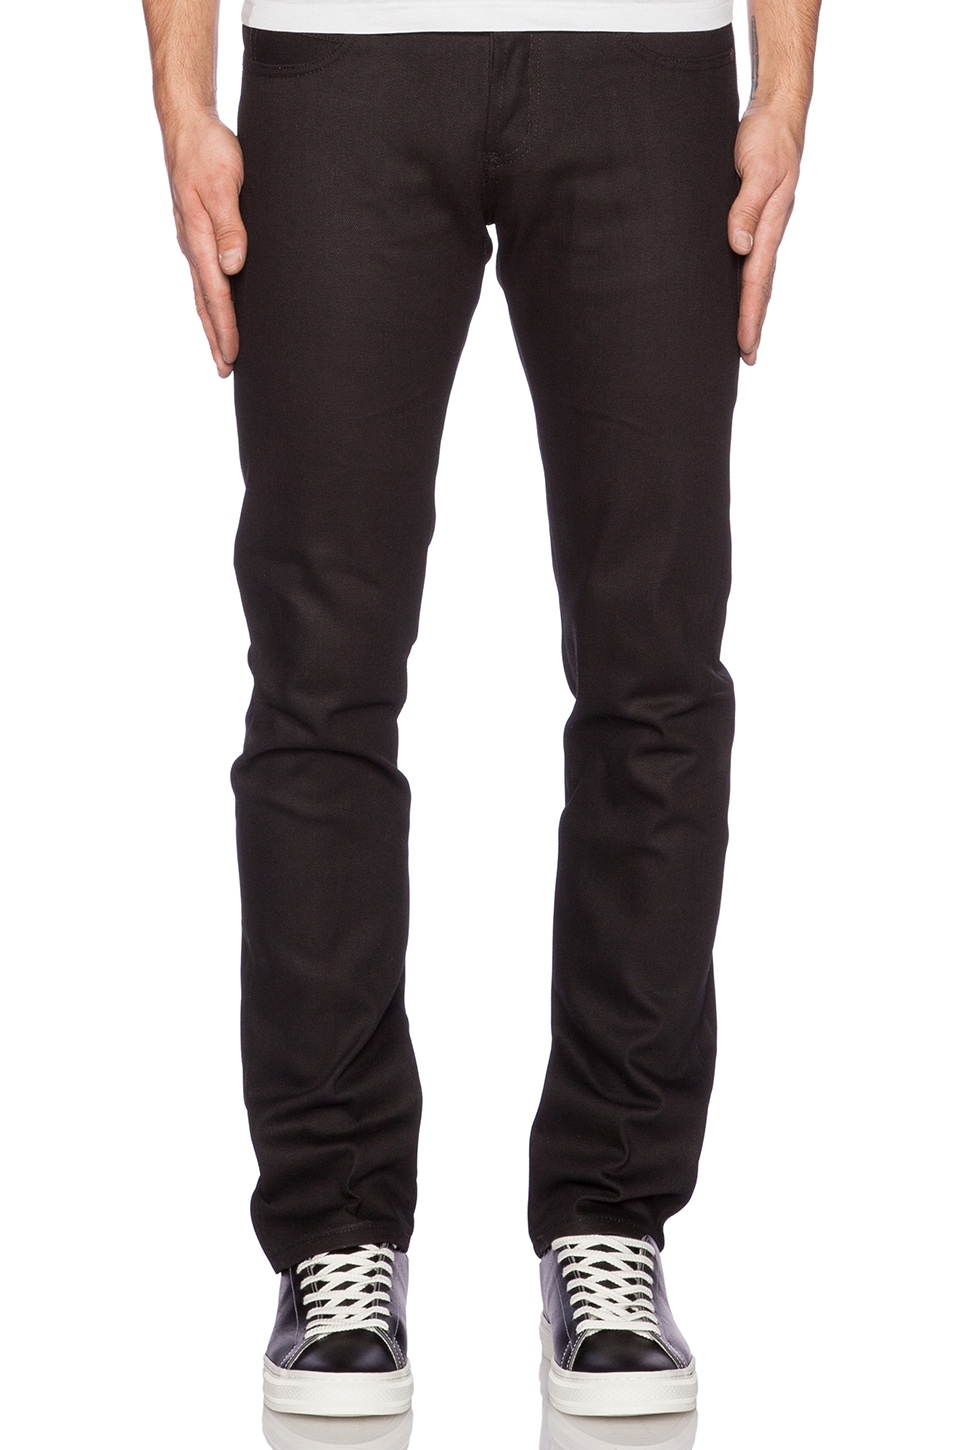 Naked & Famous Denim Super Skinny Guy Sumi Ink Coated Selvedge 12oz in Black Indigo